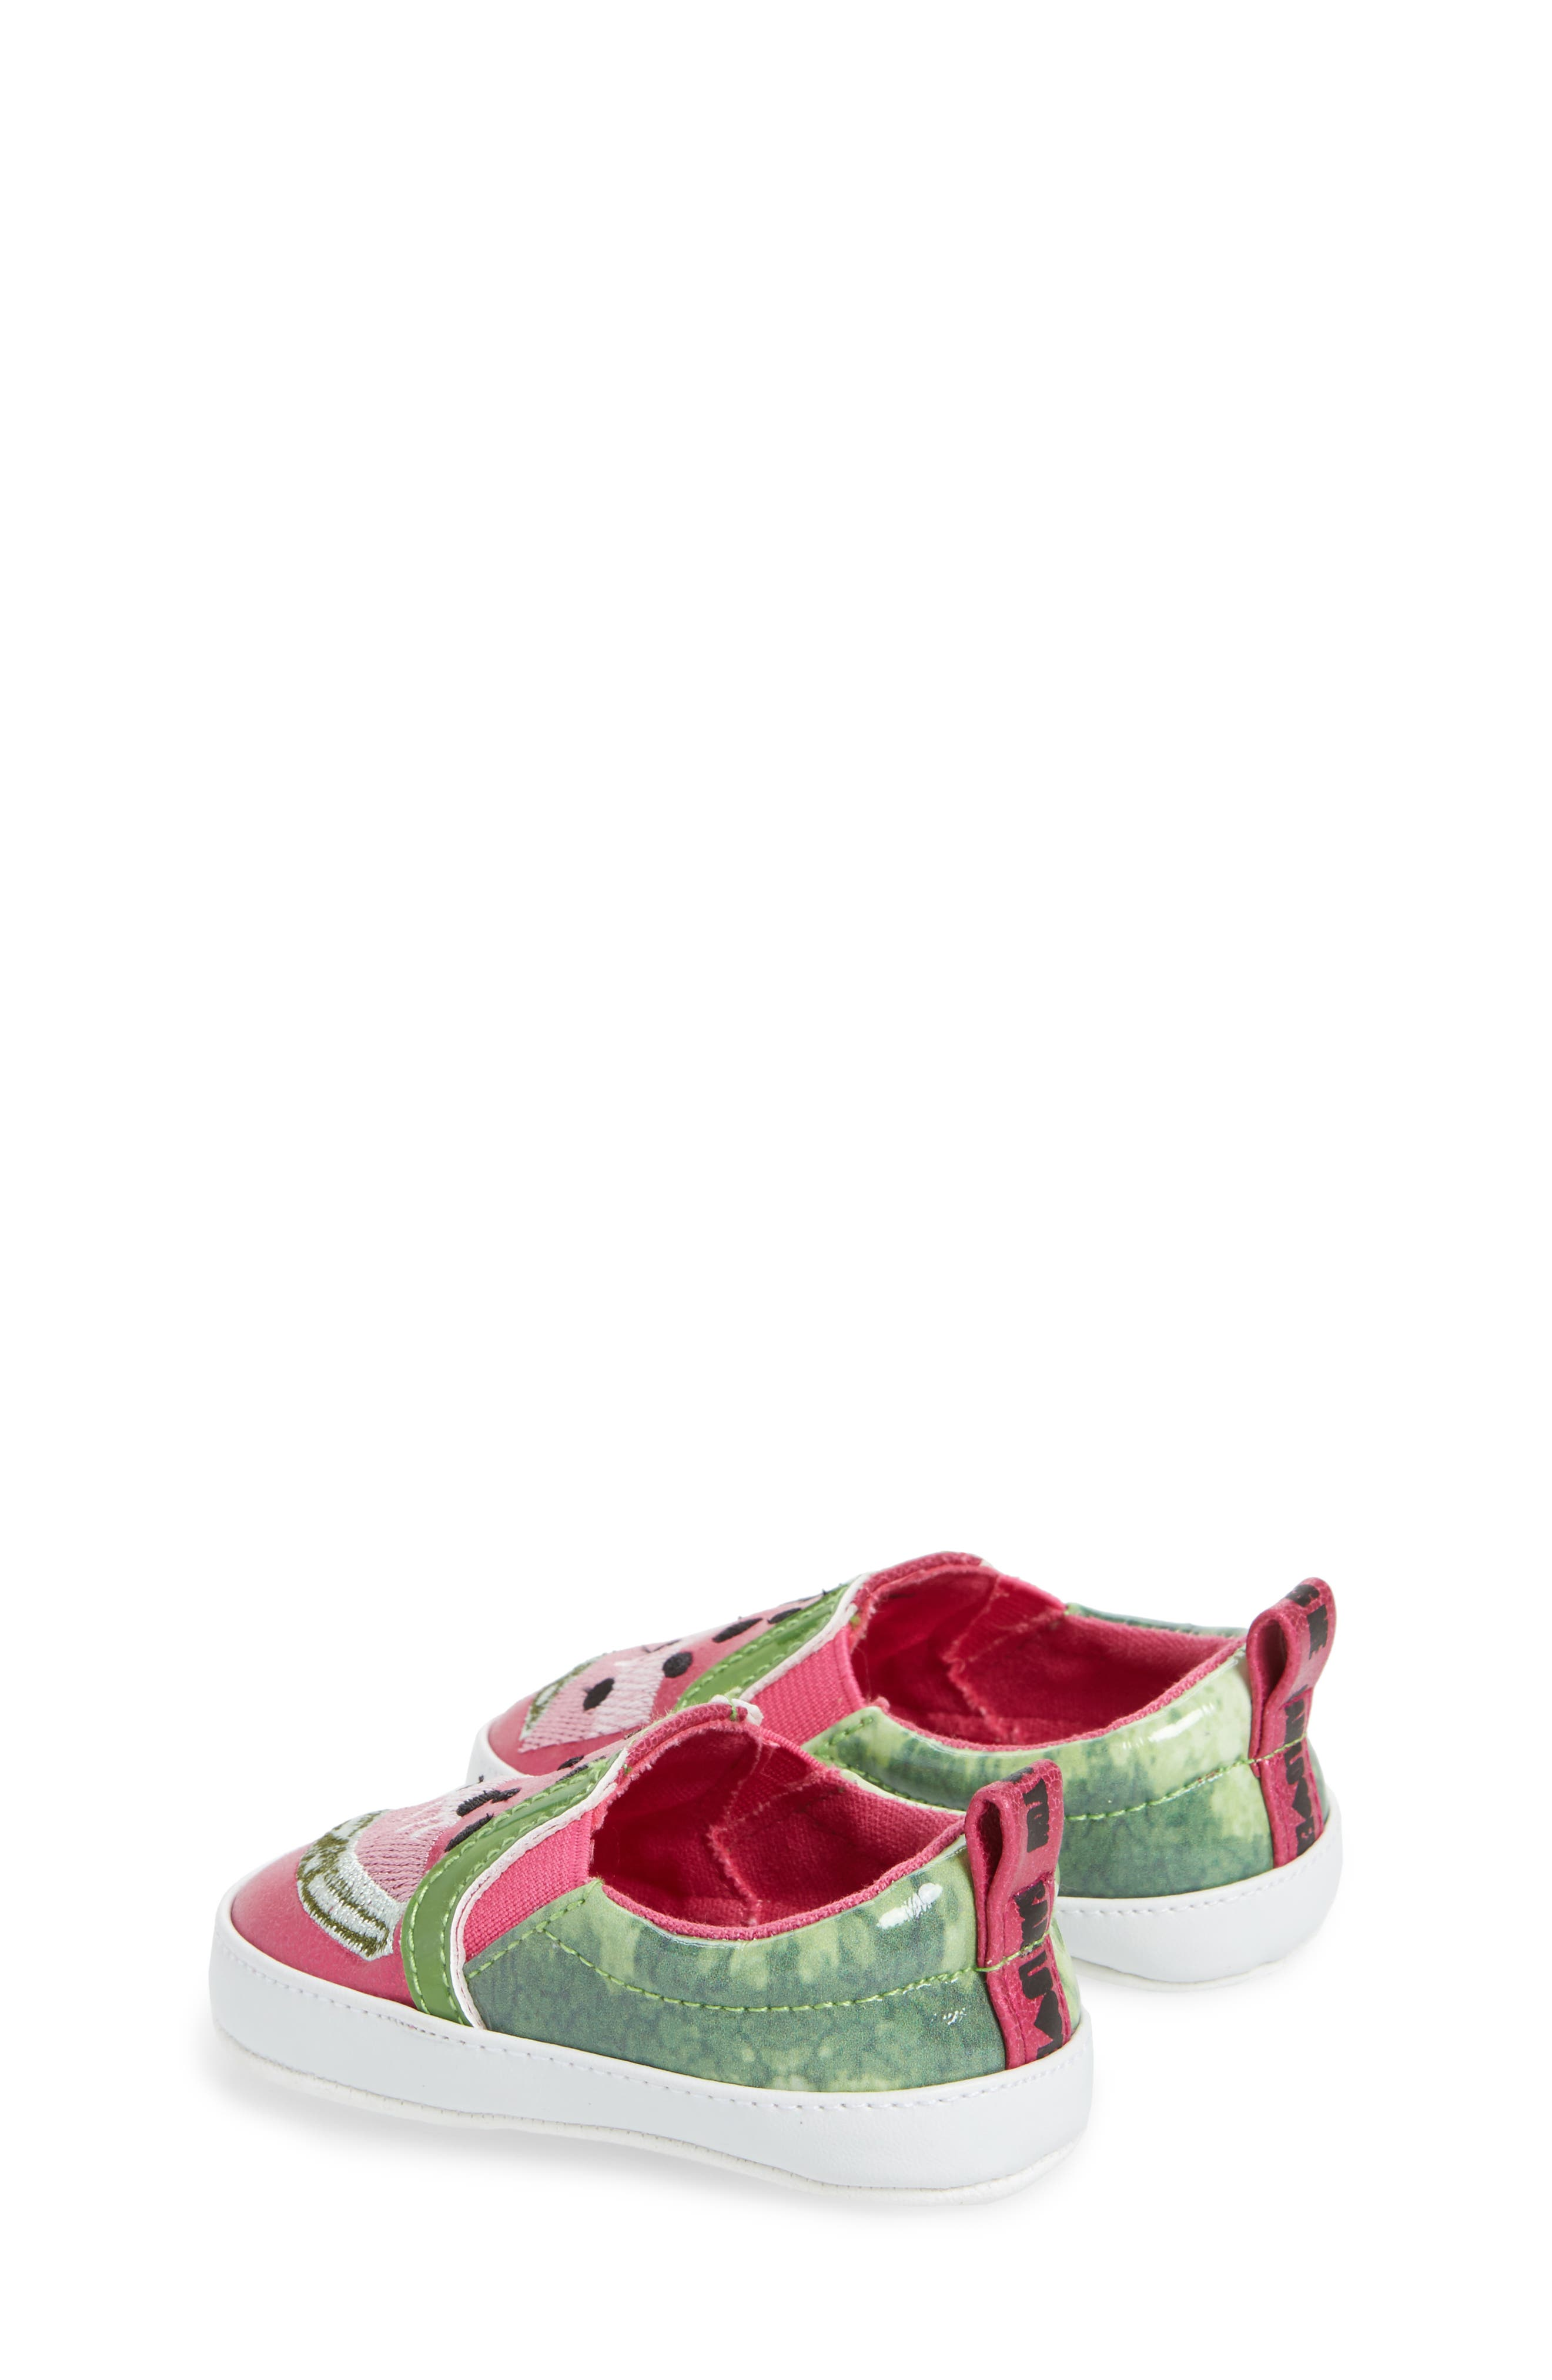 Baby Blane Watermelon Sneaker,                             Alternate thumbnail 3, color,                             653